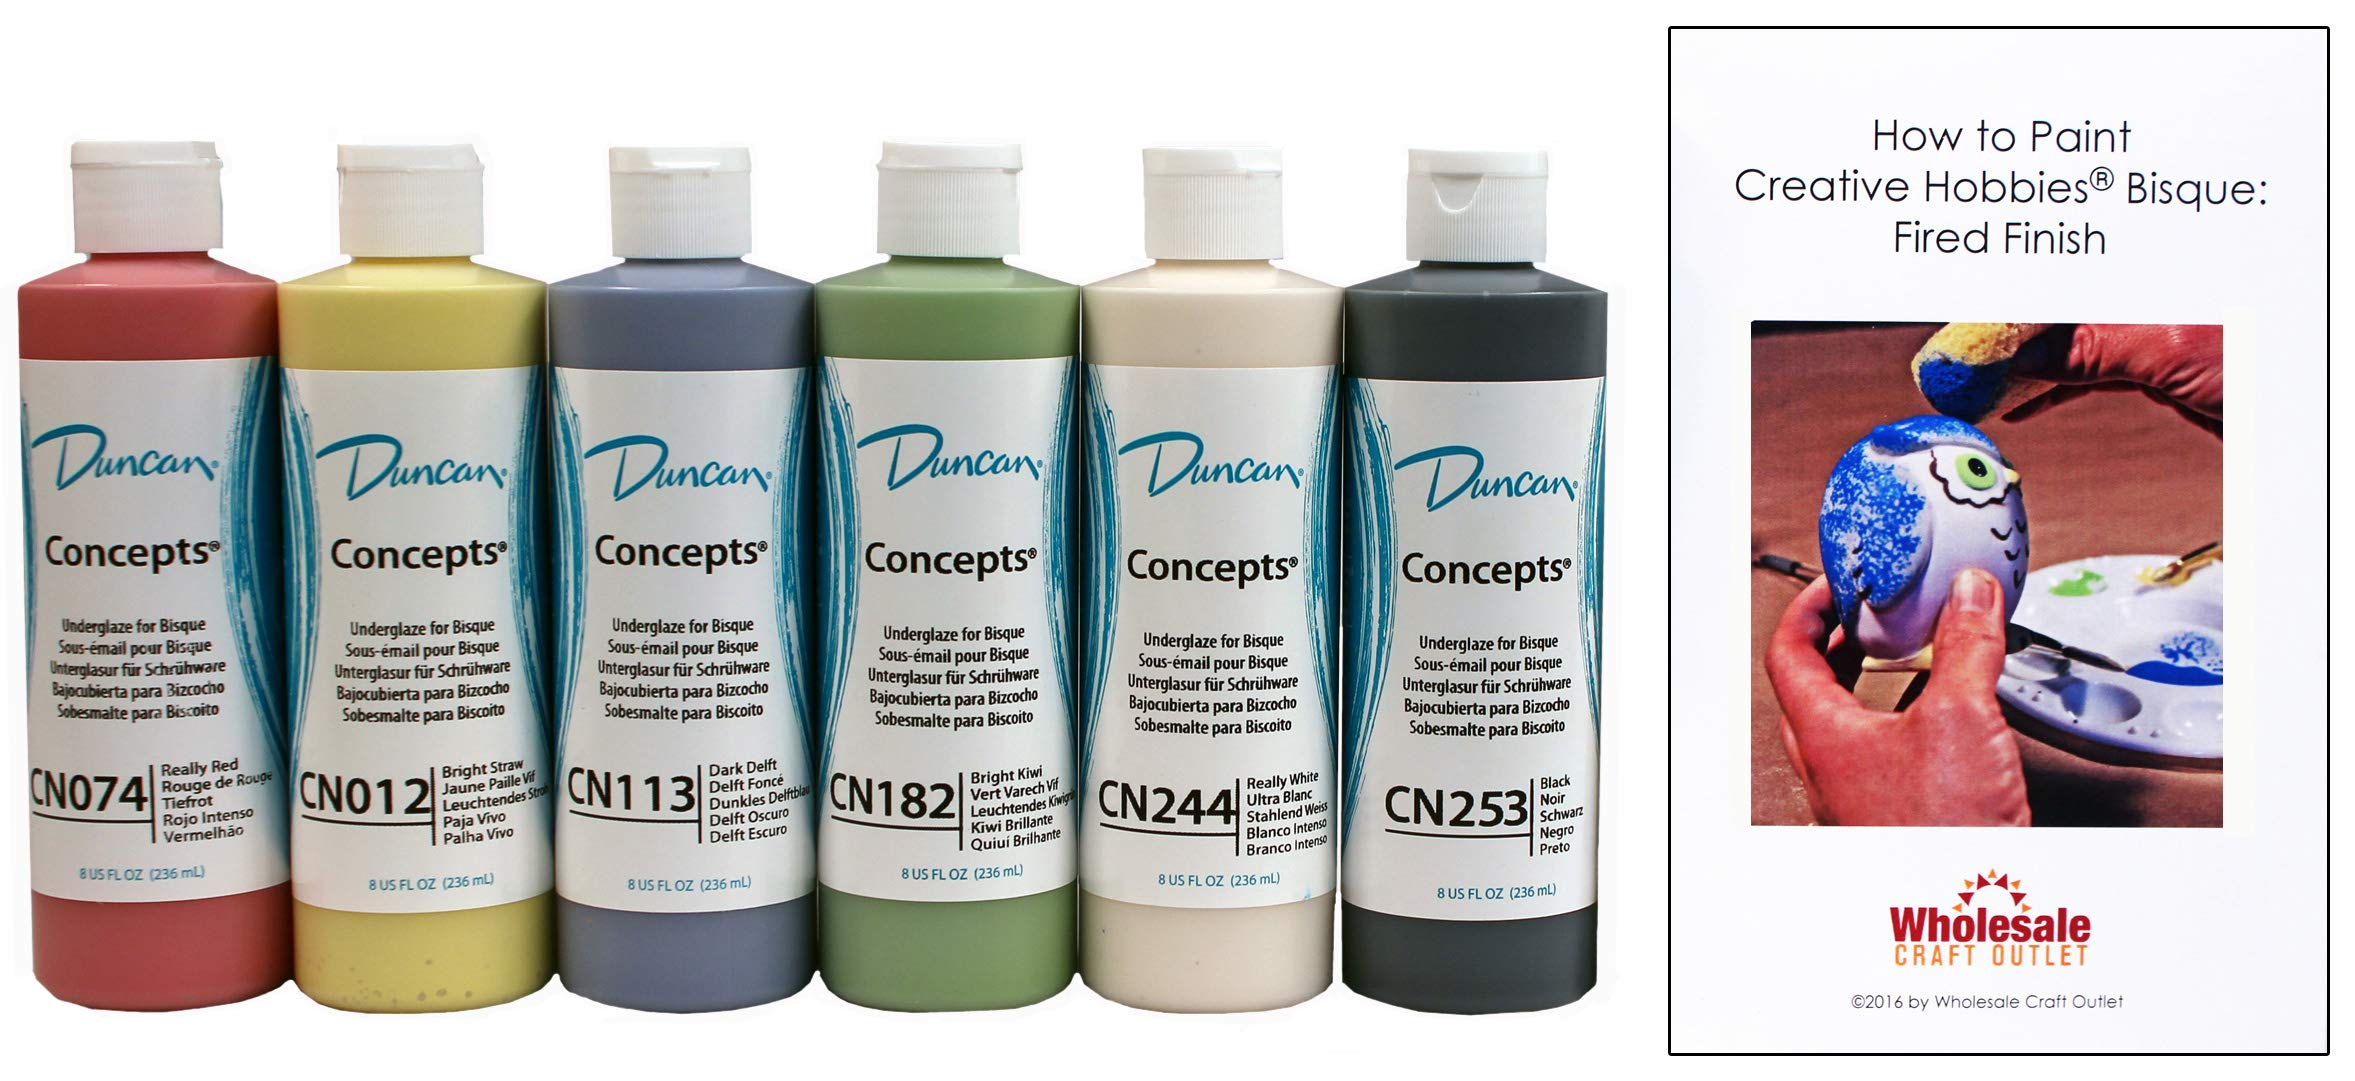 Duncan CNKIT-9.8 Concepts Underglaze Primary Colors Paint Set, 6 Best Selling Colors in 8 Ounce Bottles with Free How To Paint Ceramics Book